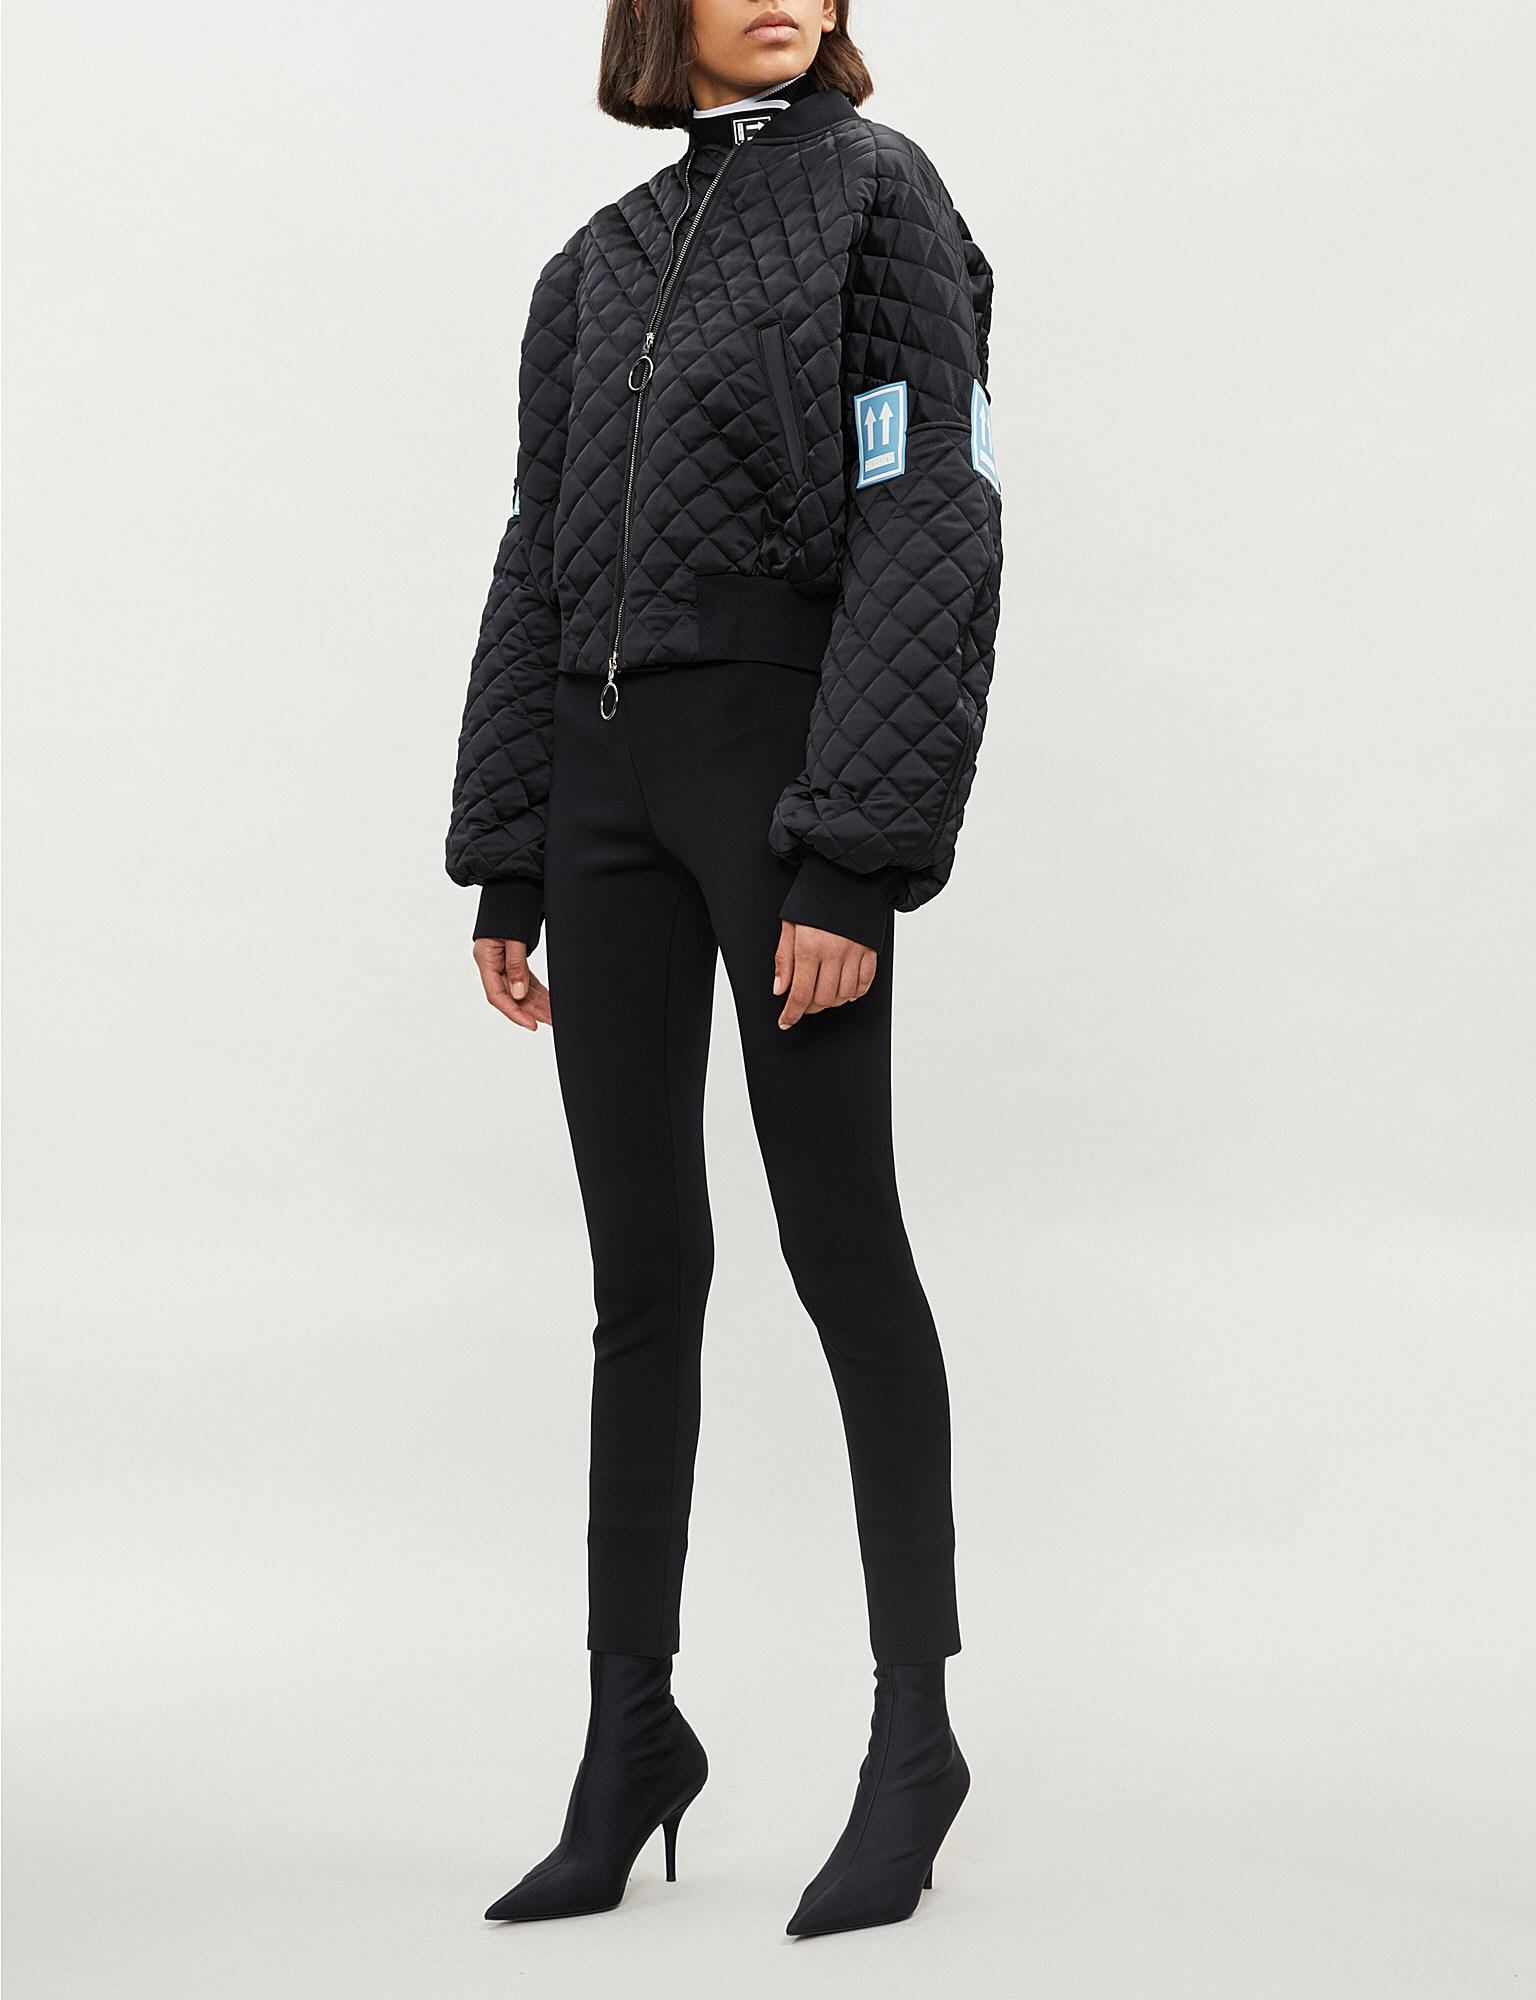 a7dfa0c15 Off-White c/o Virgil Abloh Contrast-patch Quilted Bomber Jacket in ...